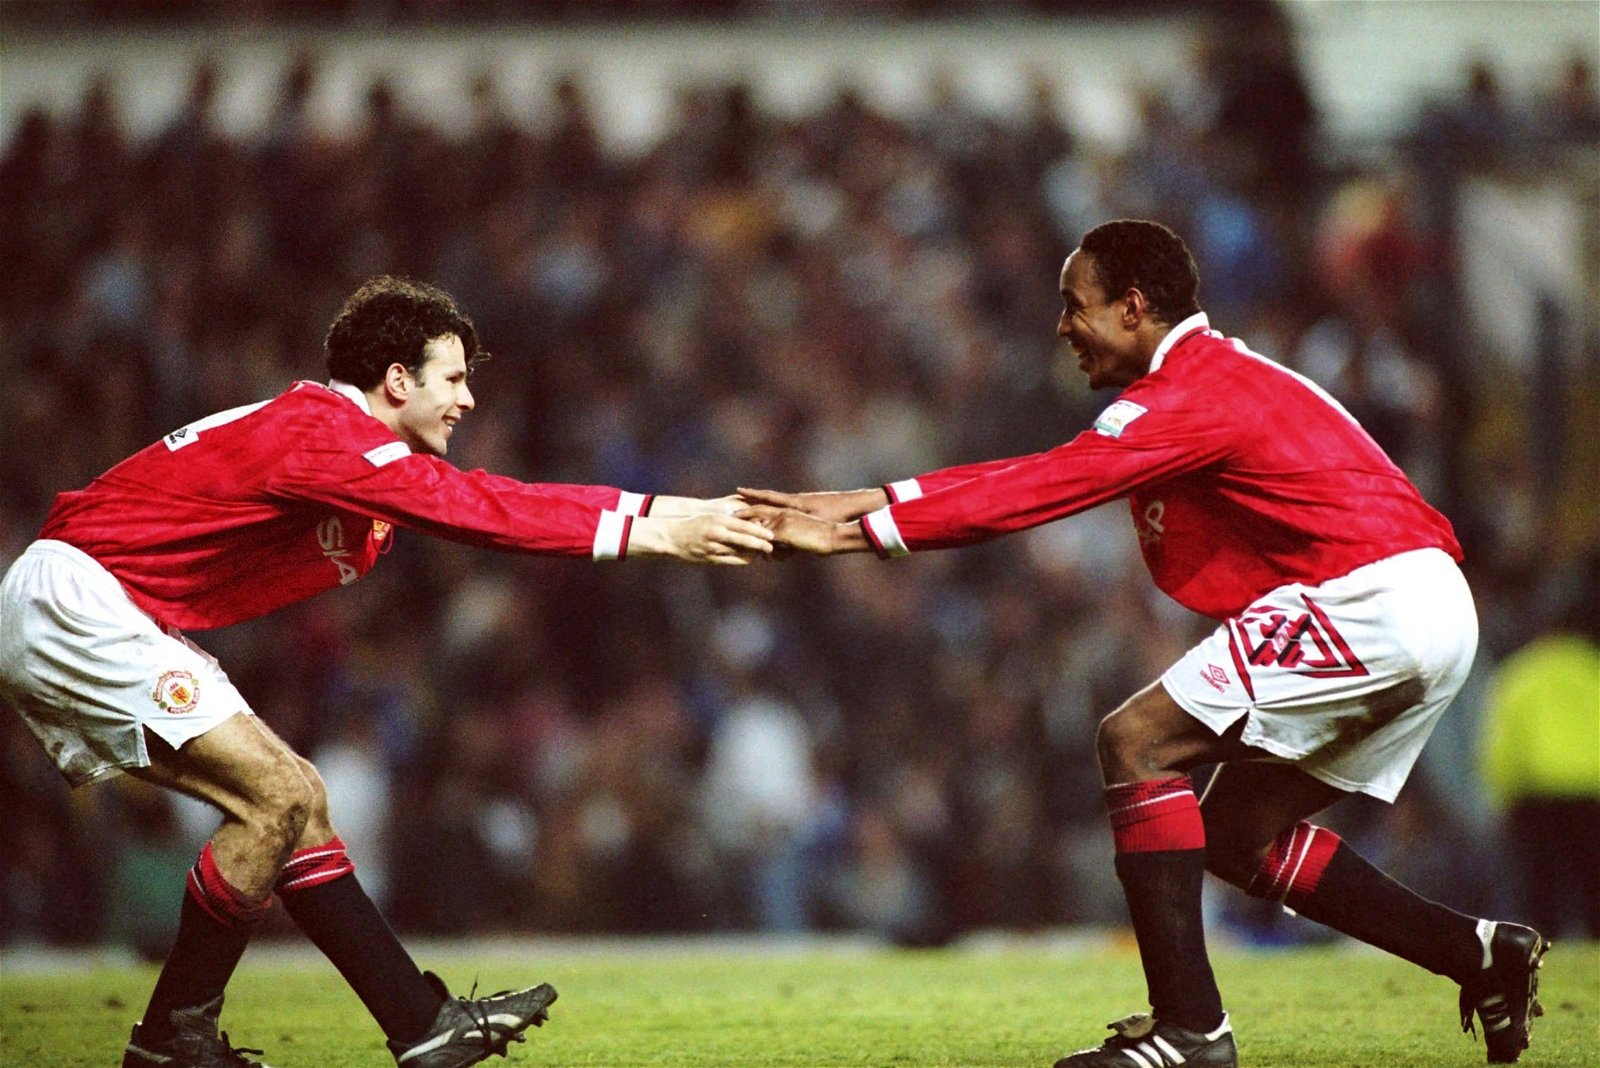 Paul Ince and Ryan Giggs, Manchester United